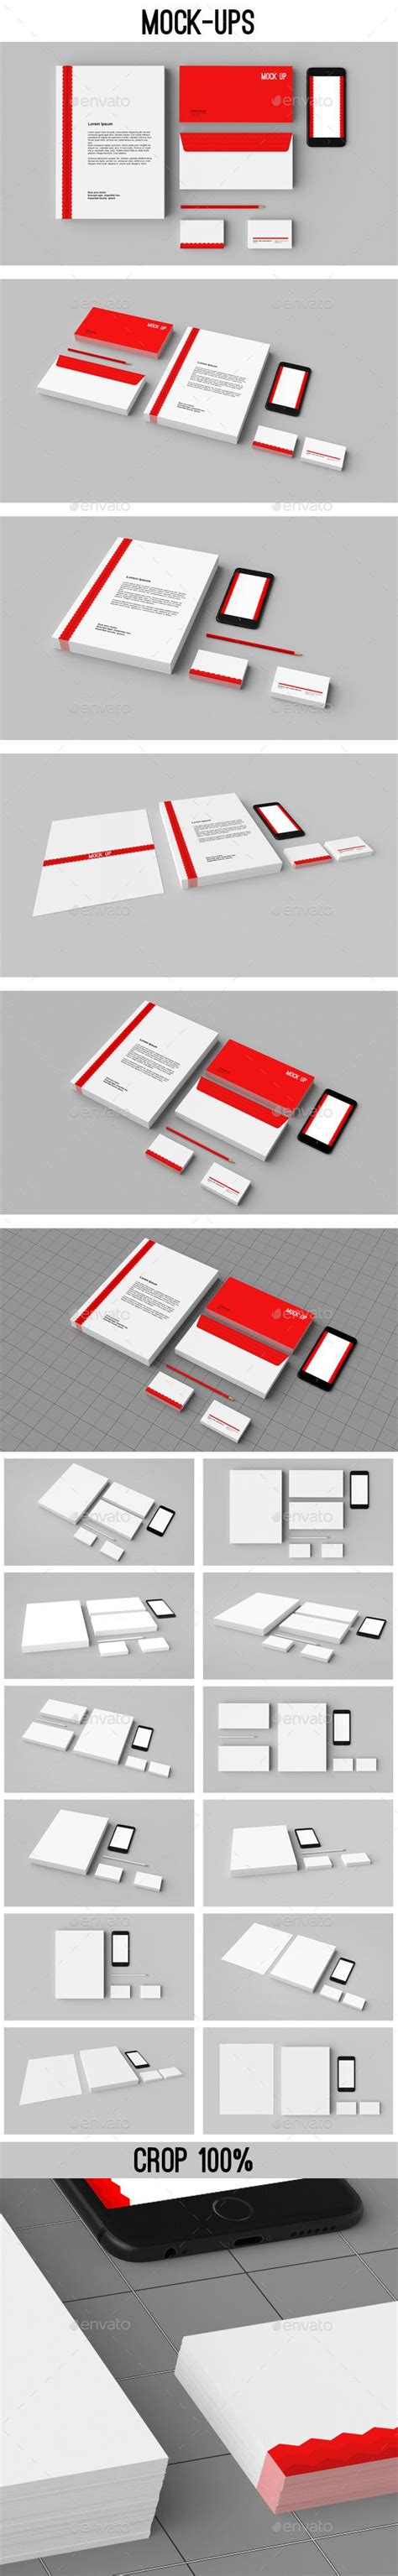 stationery mock ups corporate id  images